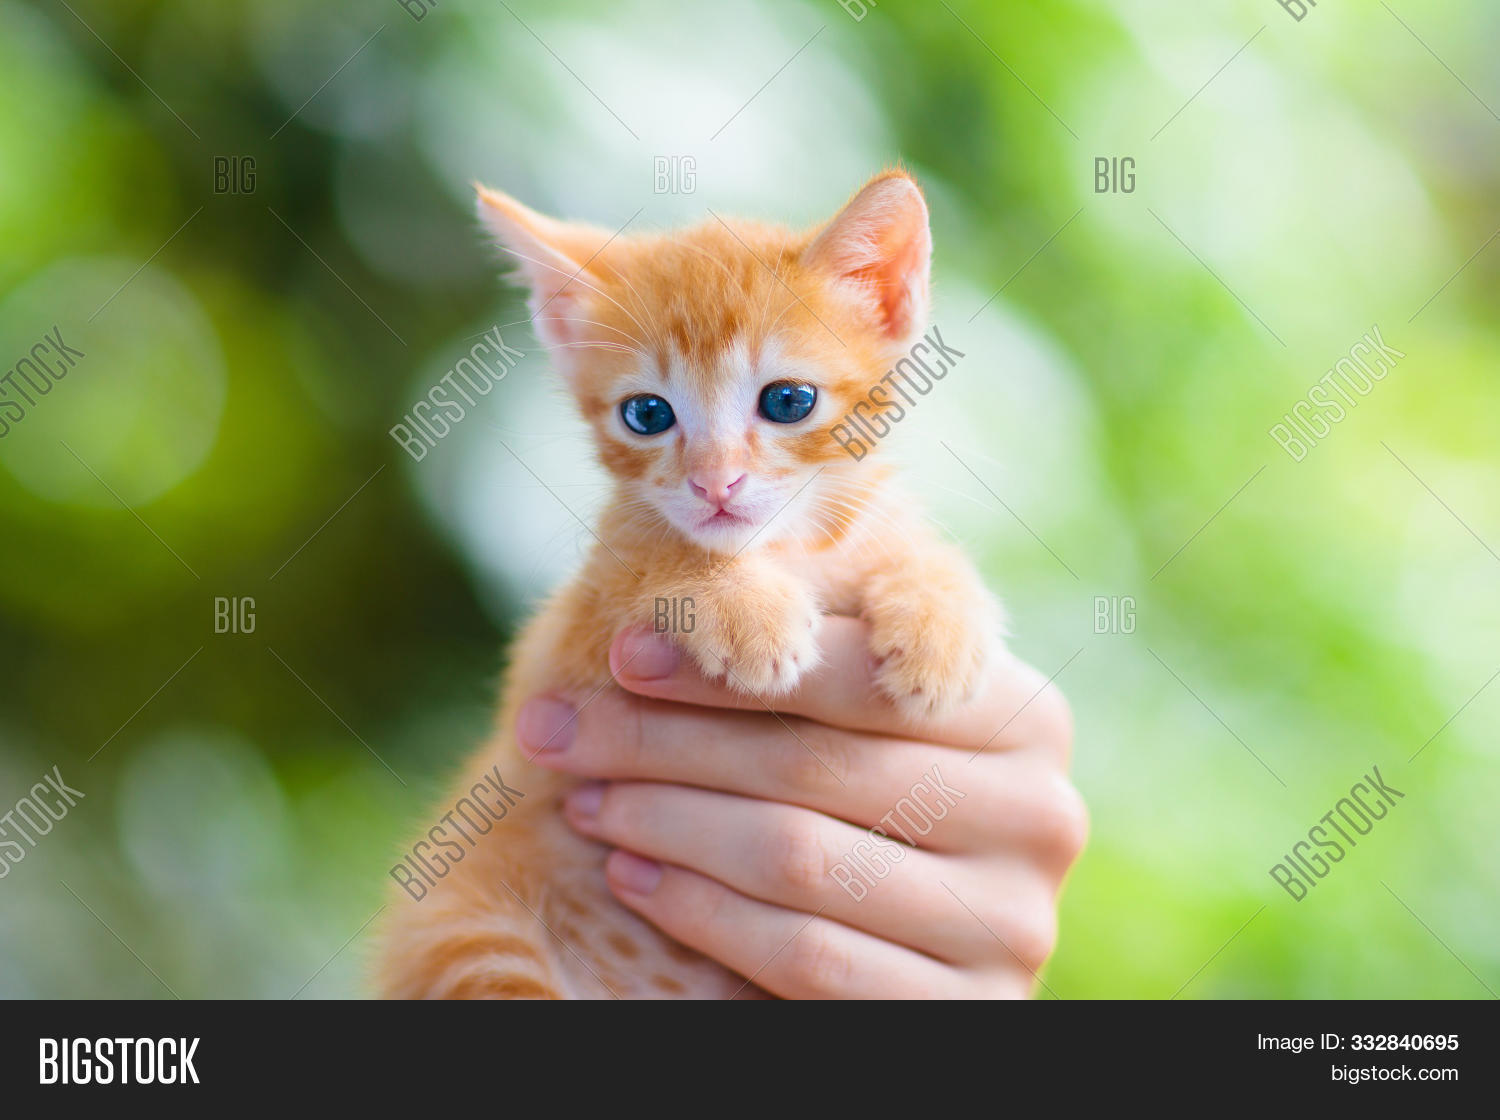 Child Holding Baby Cat Image Photo Free Trial Bigstock